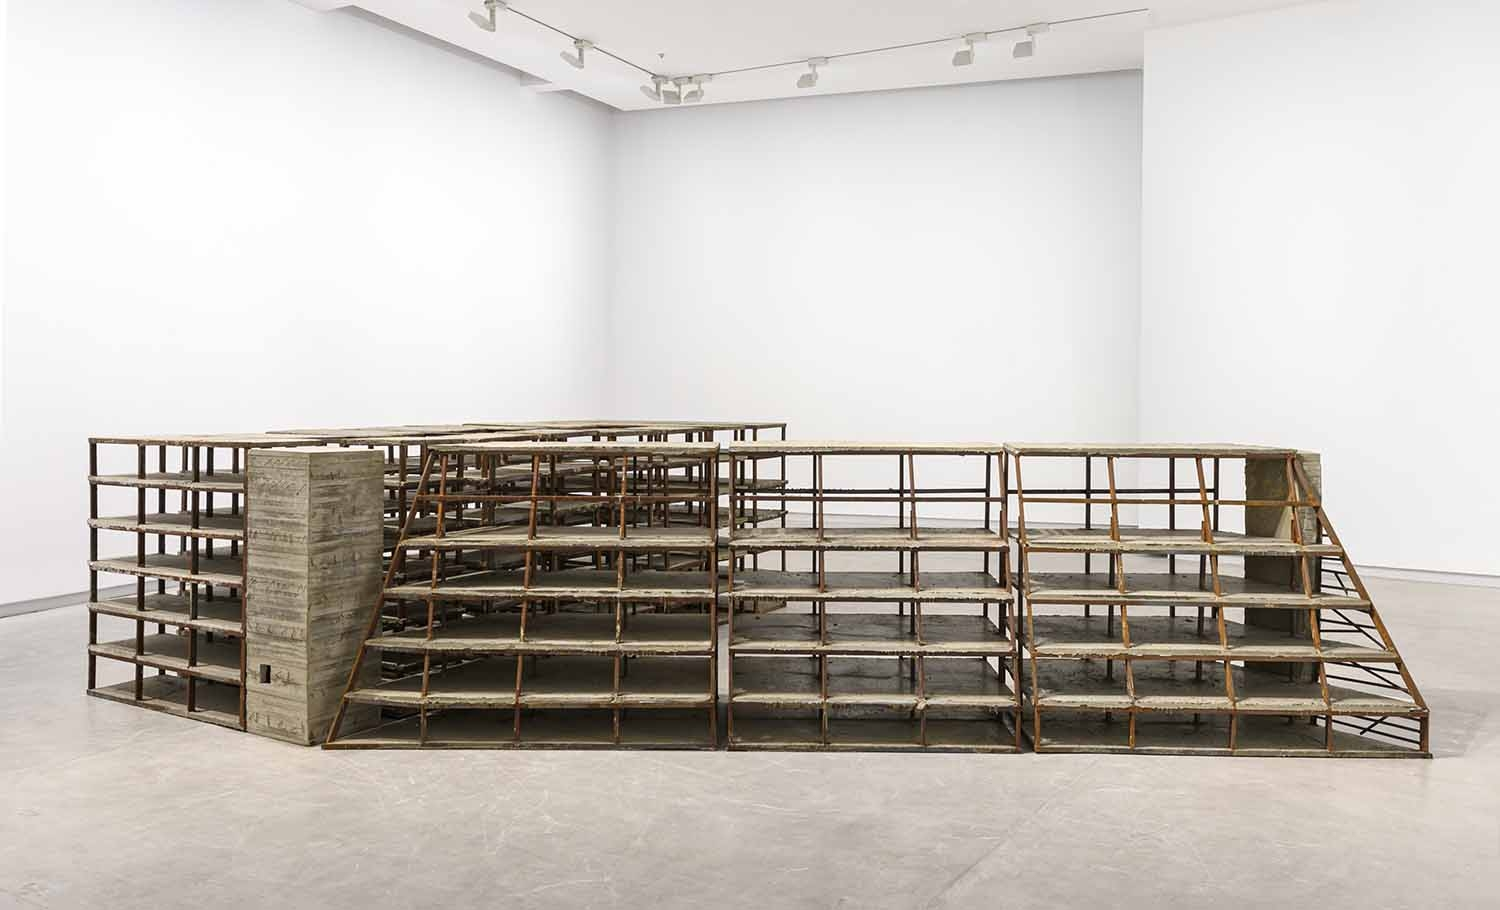 The Coop, 2019, Concrete and metal, 560 x 200 x 120 cm, Ed. 5 + 1 AP, Installation view Sharjah Art Foundation, 2019. ©MR, Photo SAF